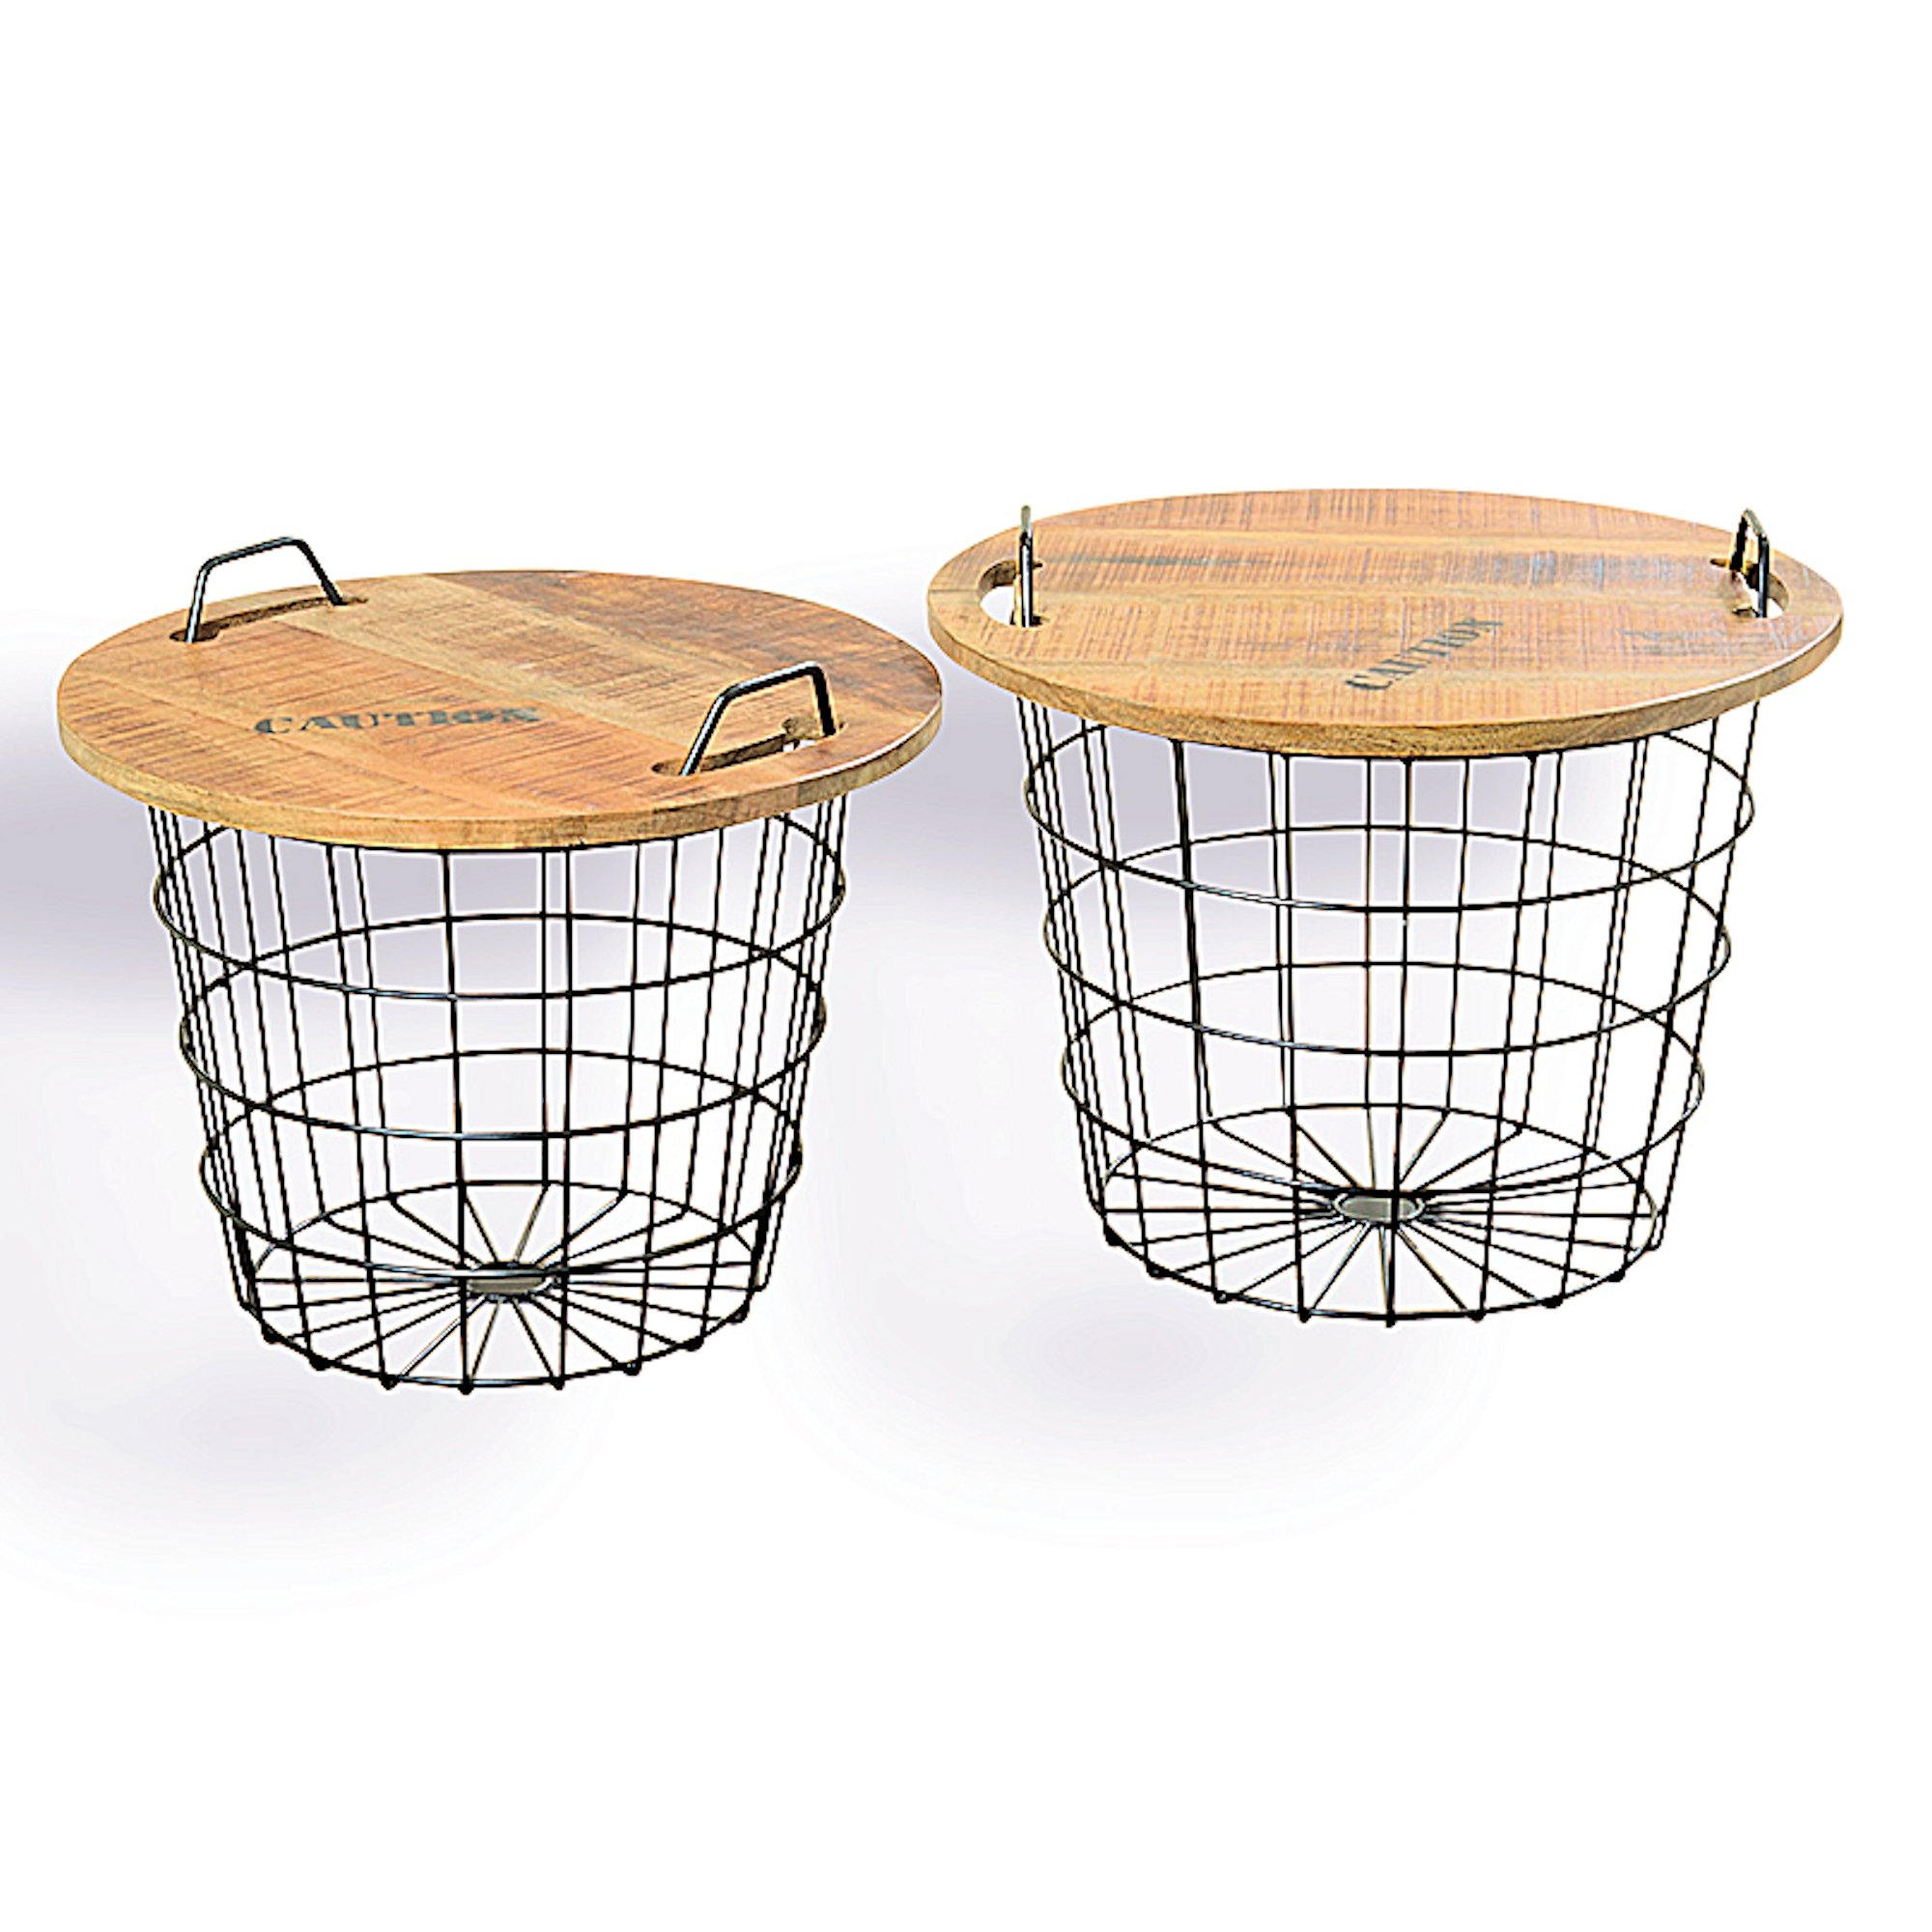 The Set of 2 Urban Chic Convertible Studio Tables or Baskets, Top Handles, Removable Tray Top, Distressed Vintage Style, Sustainable Wood, Metal, 2 Ft. and over 1 ½ Ft. Wide, By Whole House Worlds by Whole House Worlds